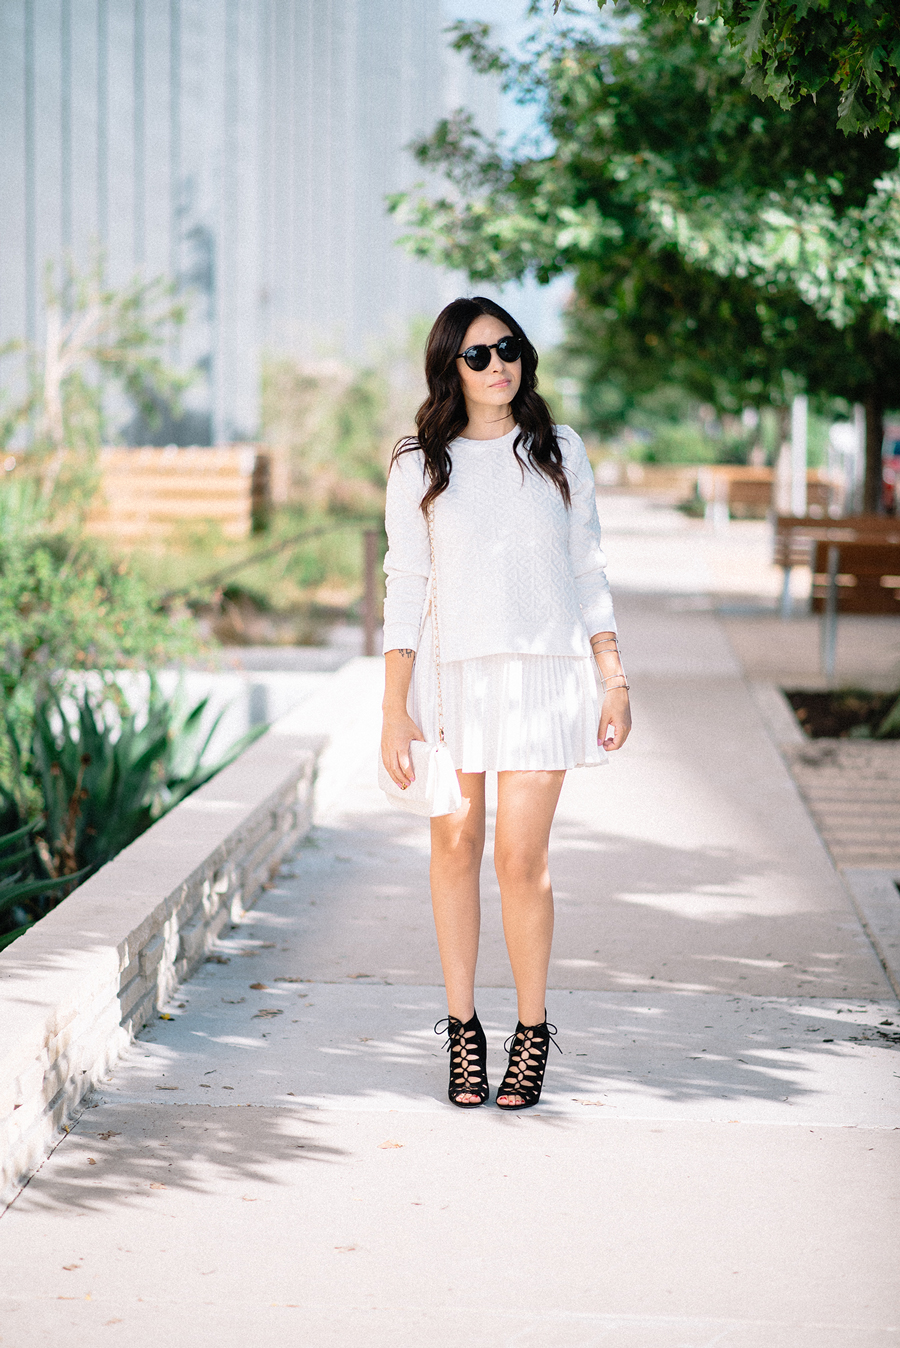 FIXIN-TO-THRILL-CARLOS-BARRON-PHOTOGRAPHY-FALL-NUDE-OCTOBER-CHIC-ATX-AUSTIN-STYLE-BLOG-BLACK-WHITE-LACE-SANDALS-TRENDS-FW15-TRENDY-CHIC-GLAM-FASHION-TEXAS-2